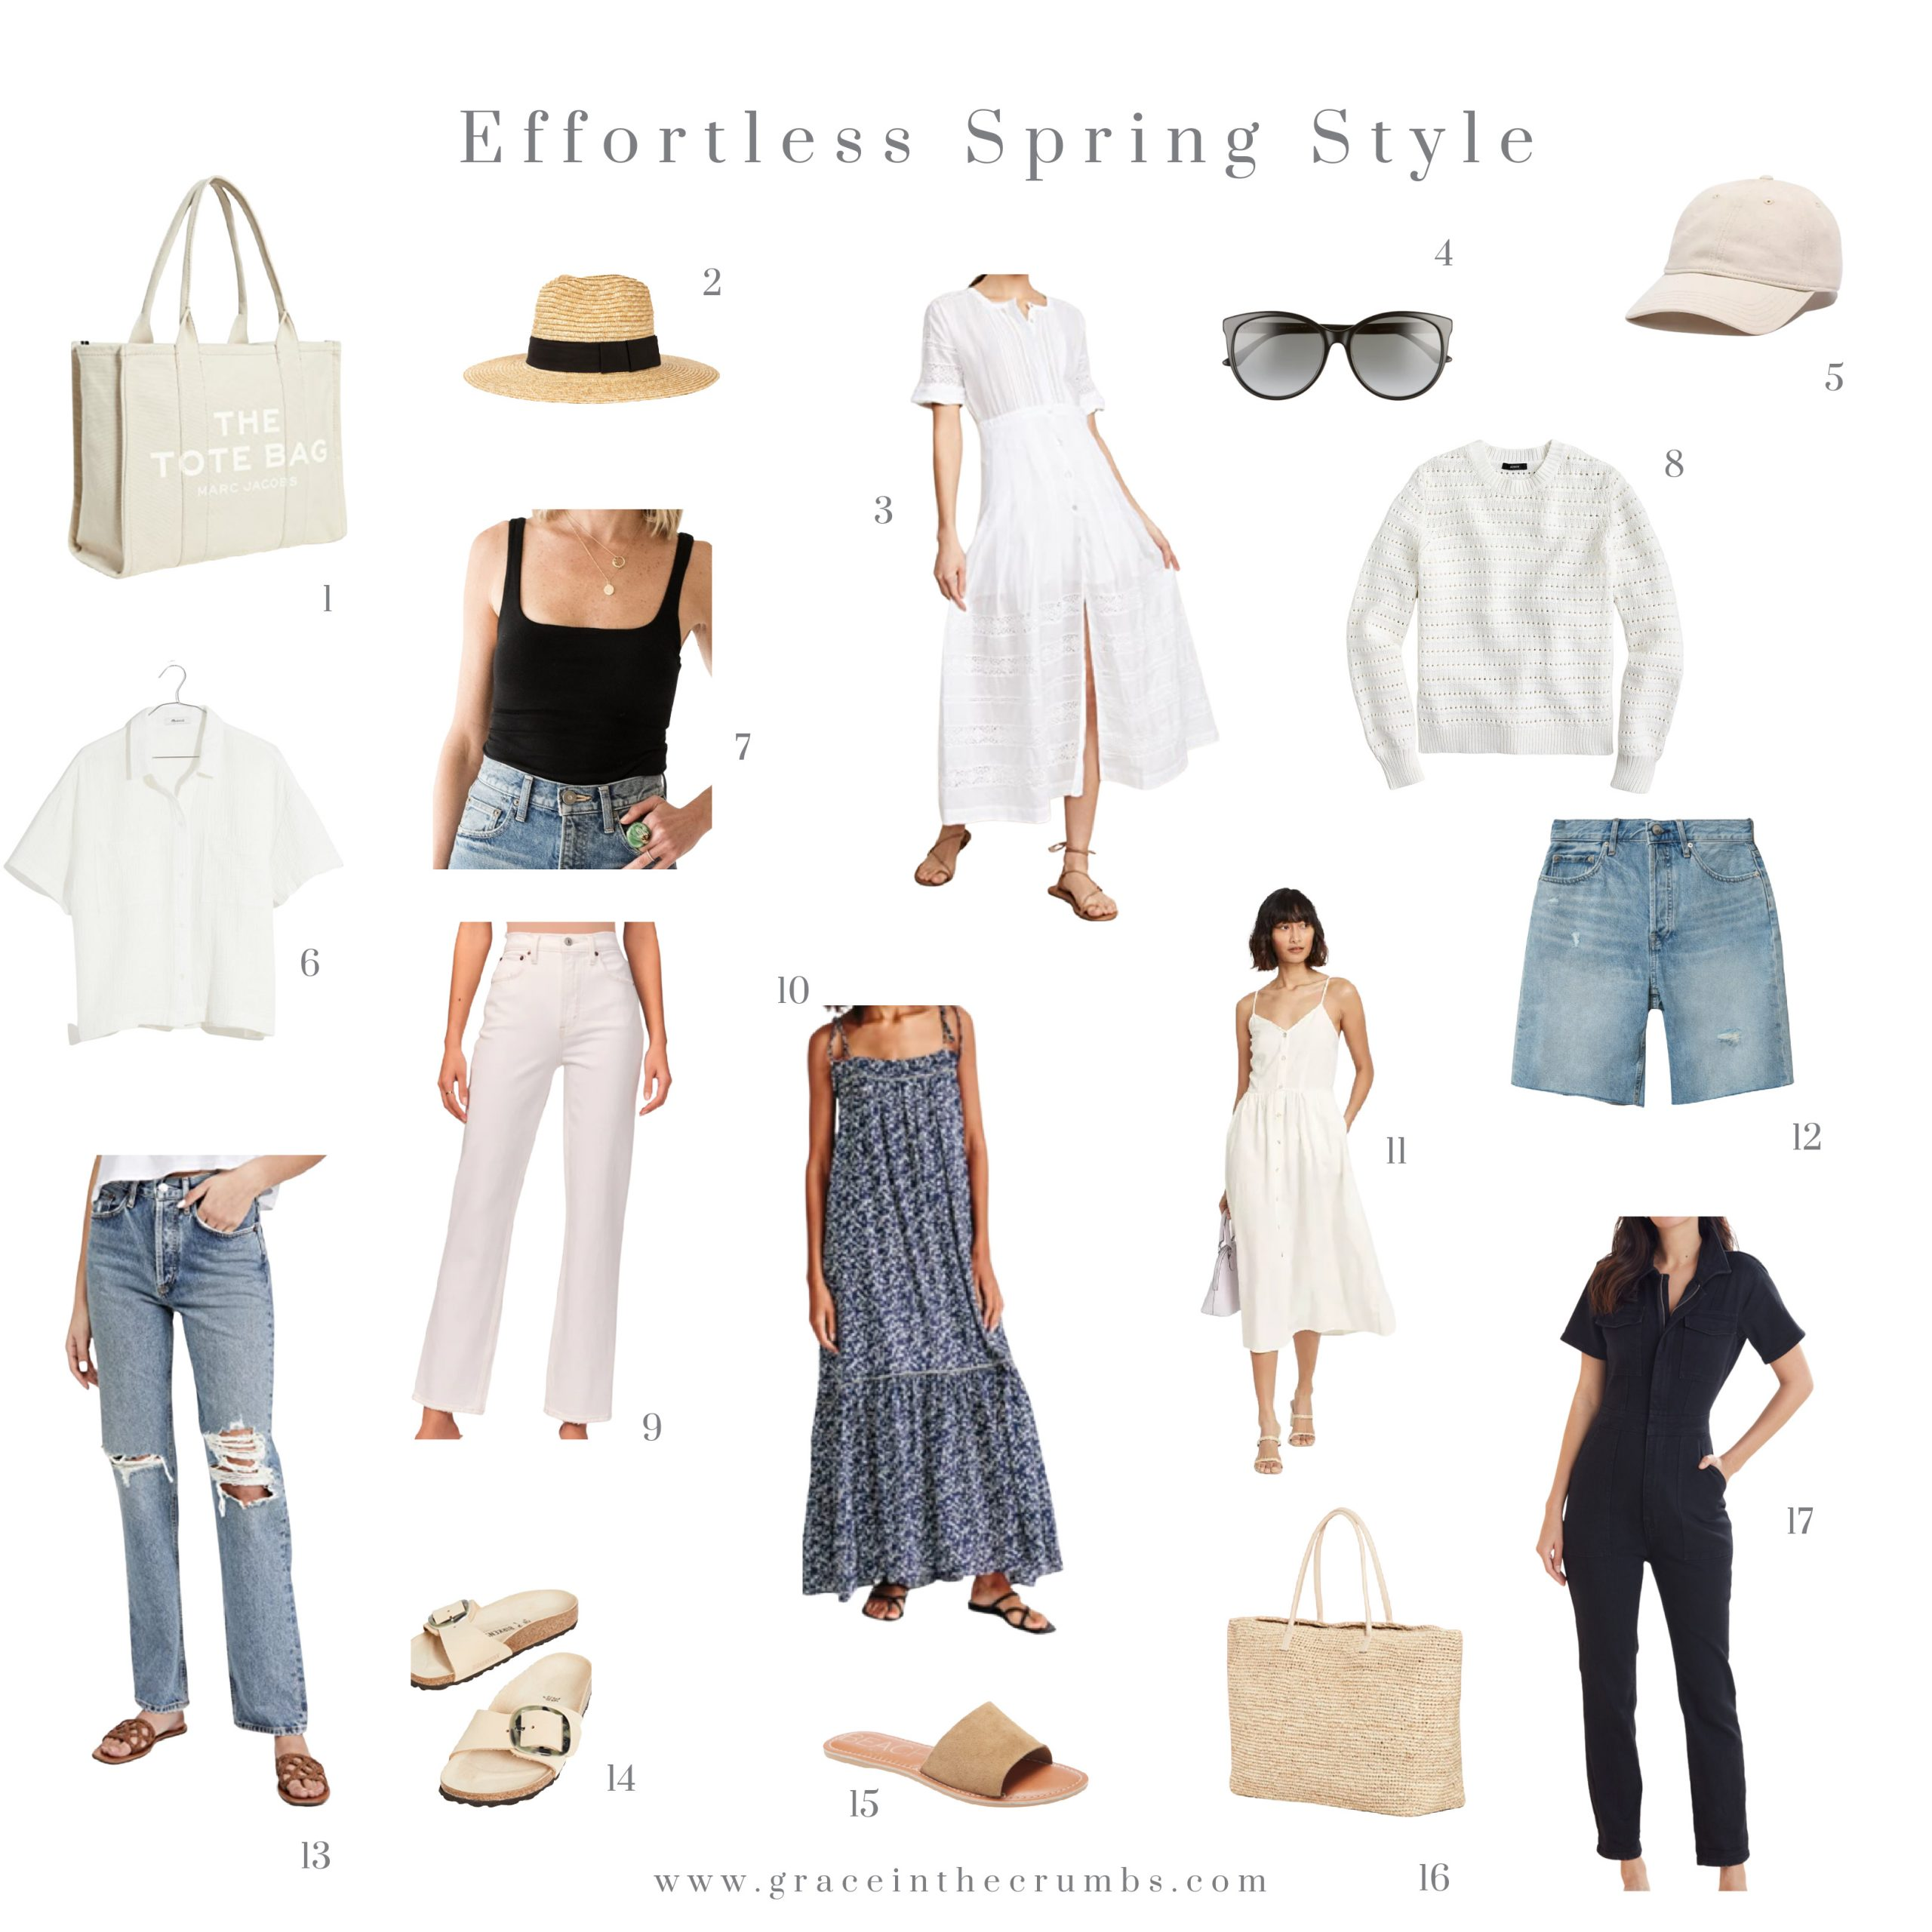 My effortless spring style